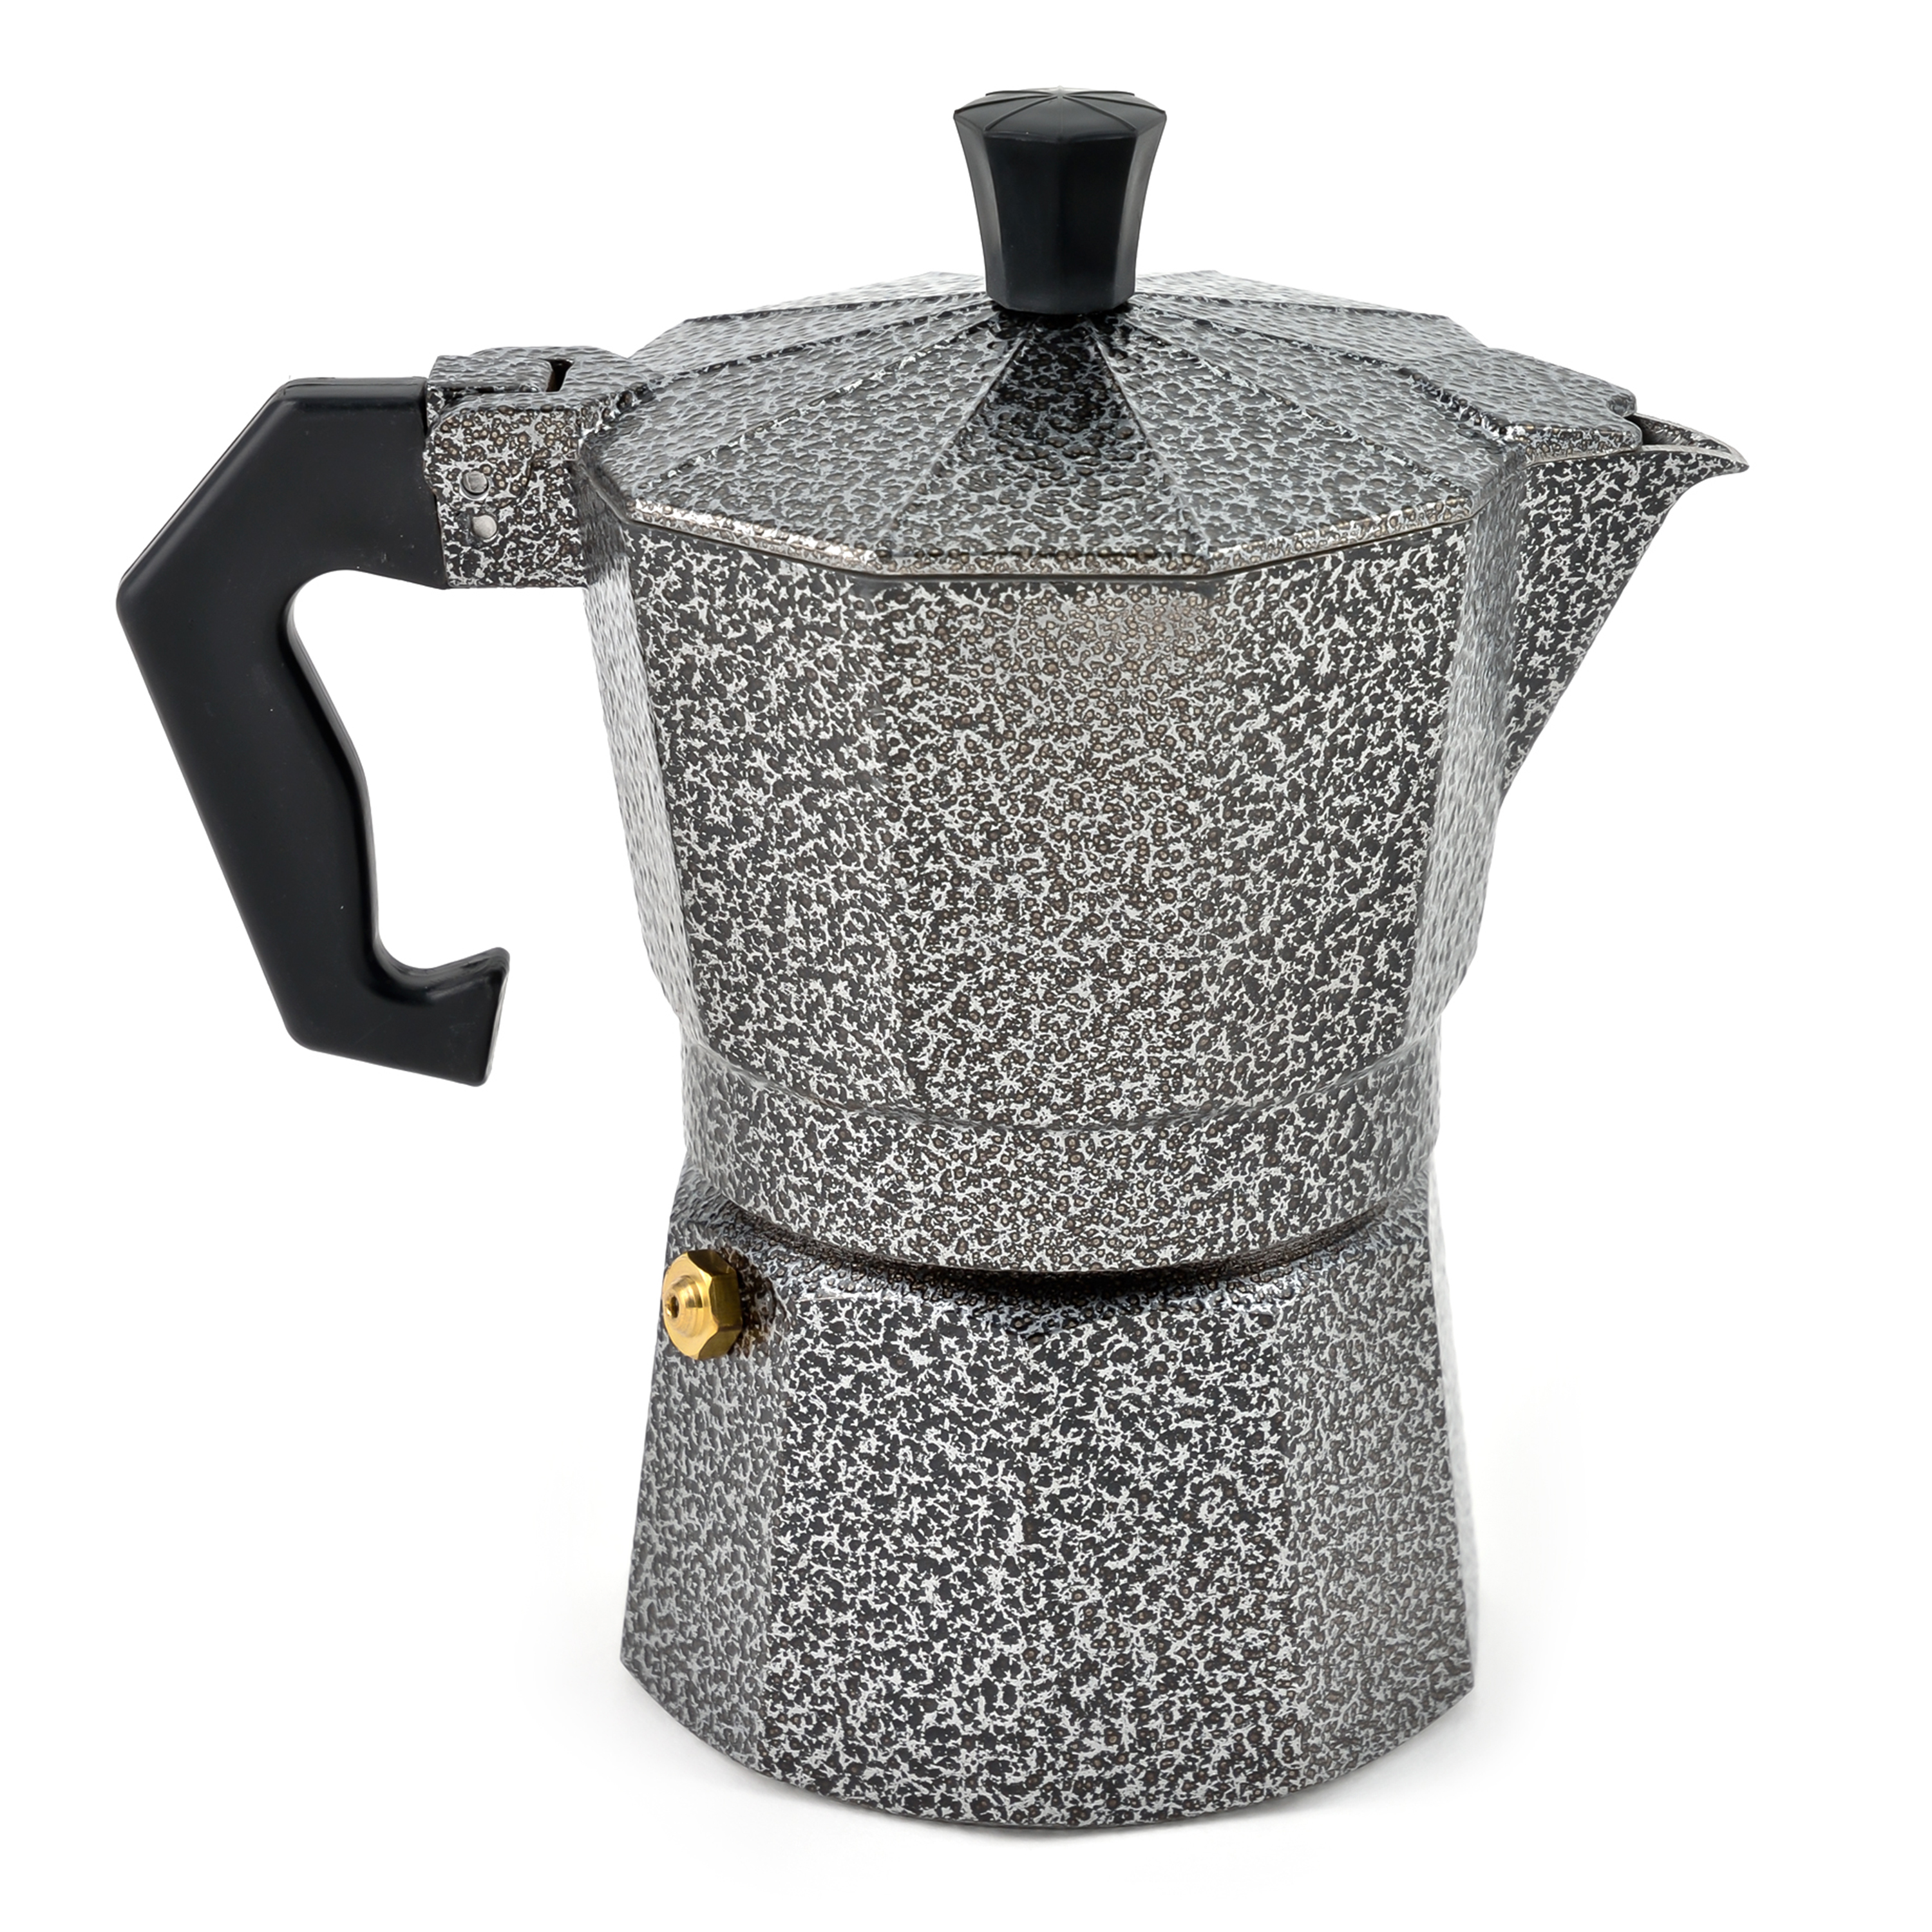 Chinook Granite Espresso Coffee Maker, 3-Cup